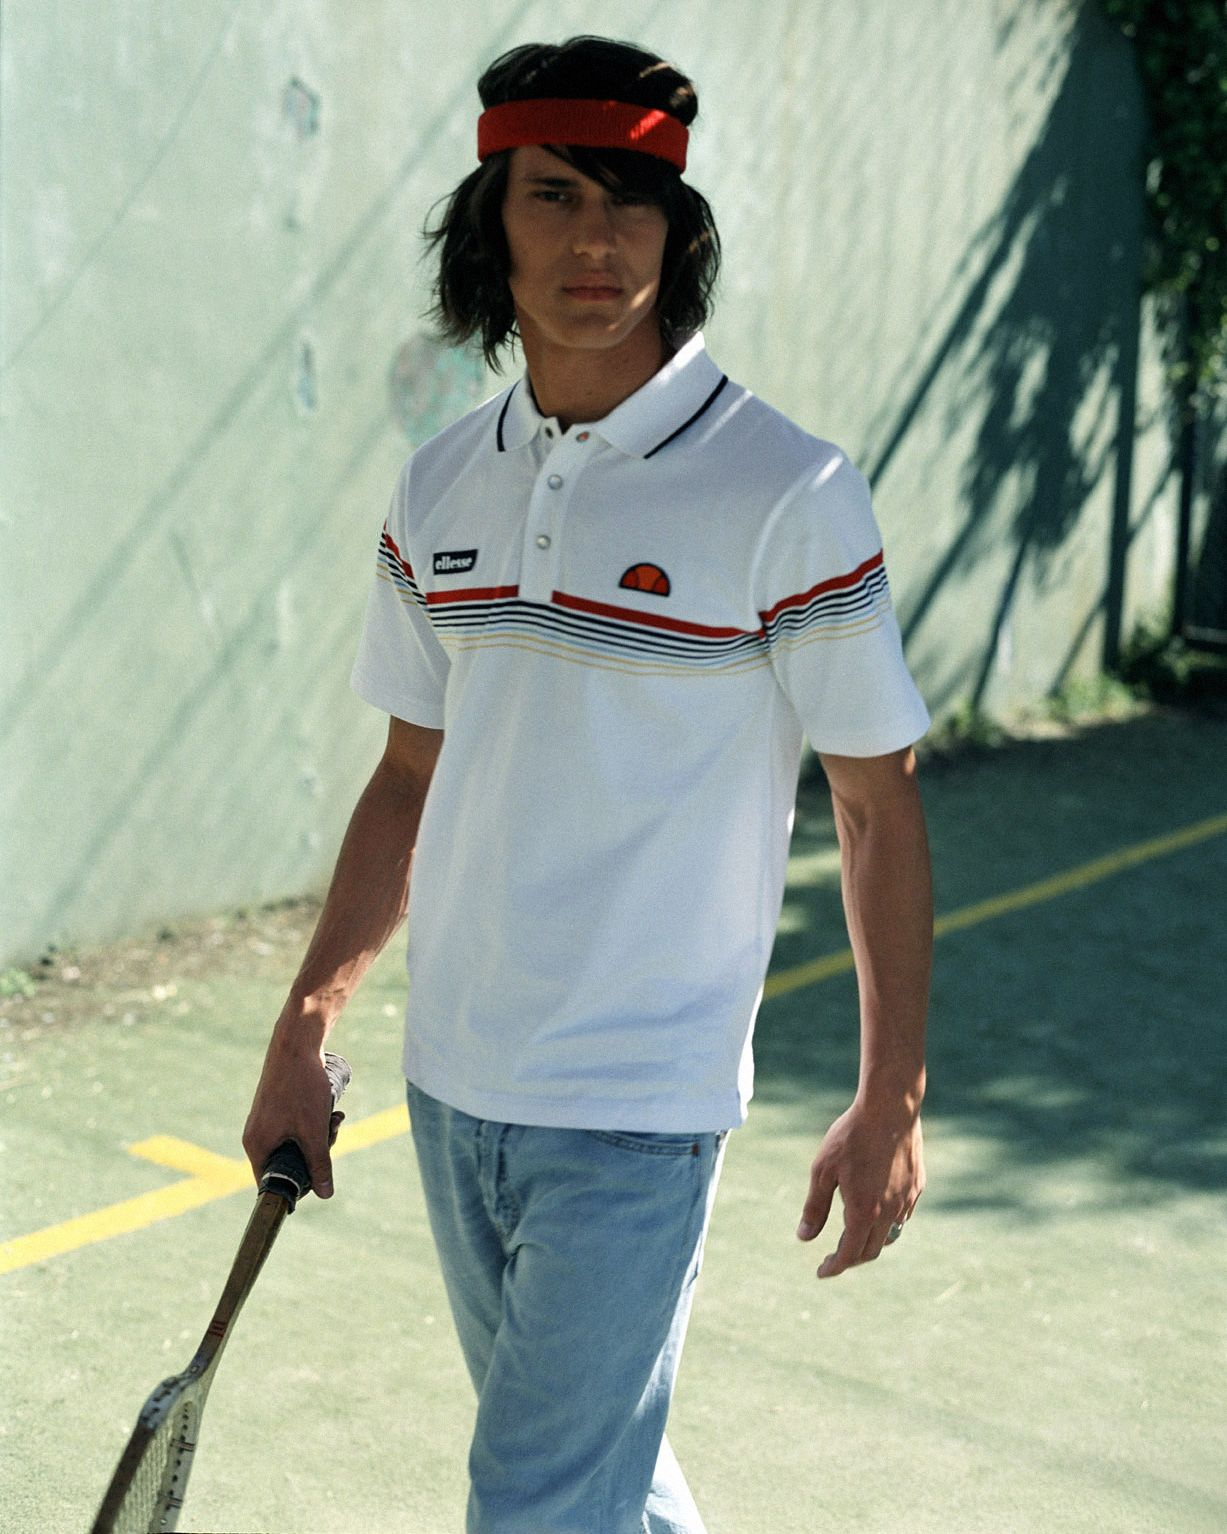 ongelooflijke prijzen sportschoenen beste waarde How ellesse Came to Be One of the Biggest Names in Tennis